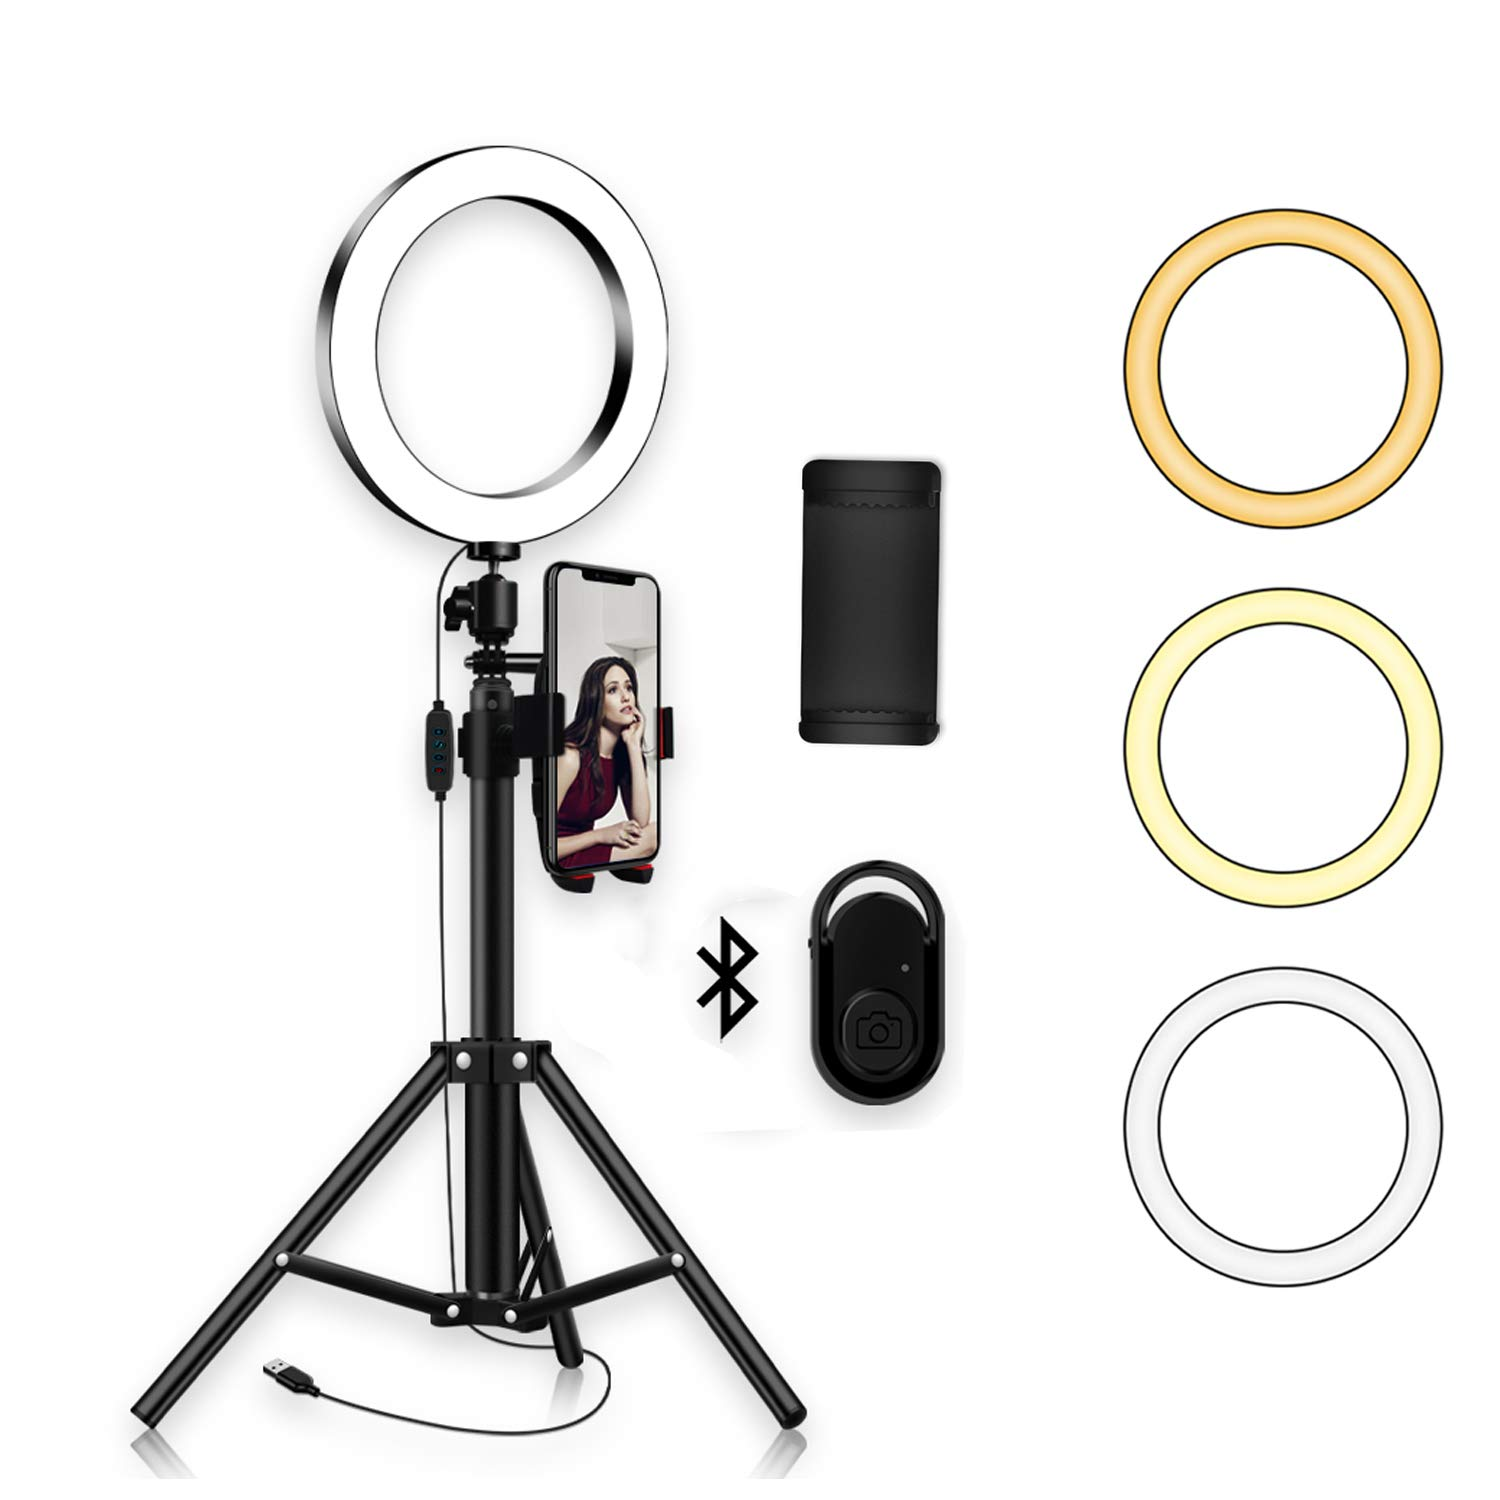 Ring Light with Tripod Stand Phone Selfie Kit - 8 inch LED Camera Ringlight for Makeup YouTube Video Live Blog Photo Studio Lighting, Remote Work with iPhone Xs Max Xr X 7 8 Plus & Android Phones by YingnuoST